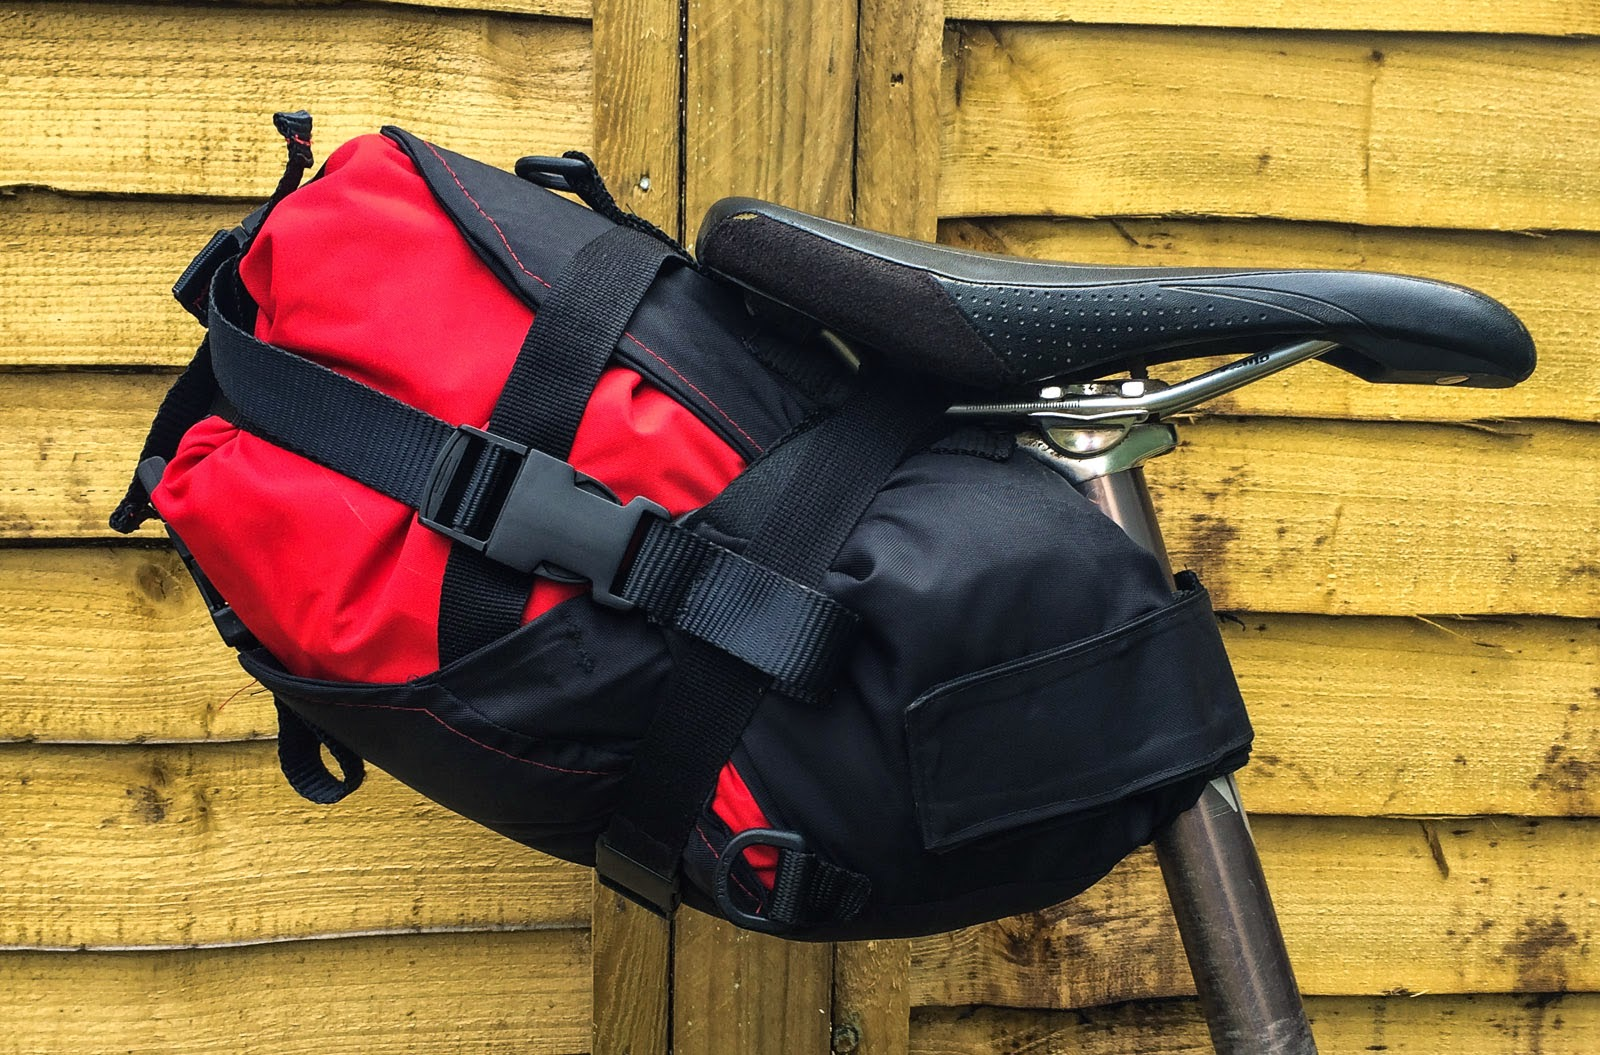 Photo: My finished compression seat pack inspired by the Wildcat Tiger design, but not nearly as good! I think a MKii will be necessary at some point!